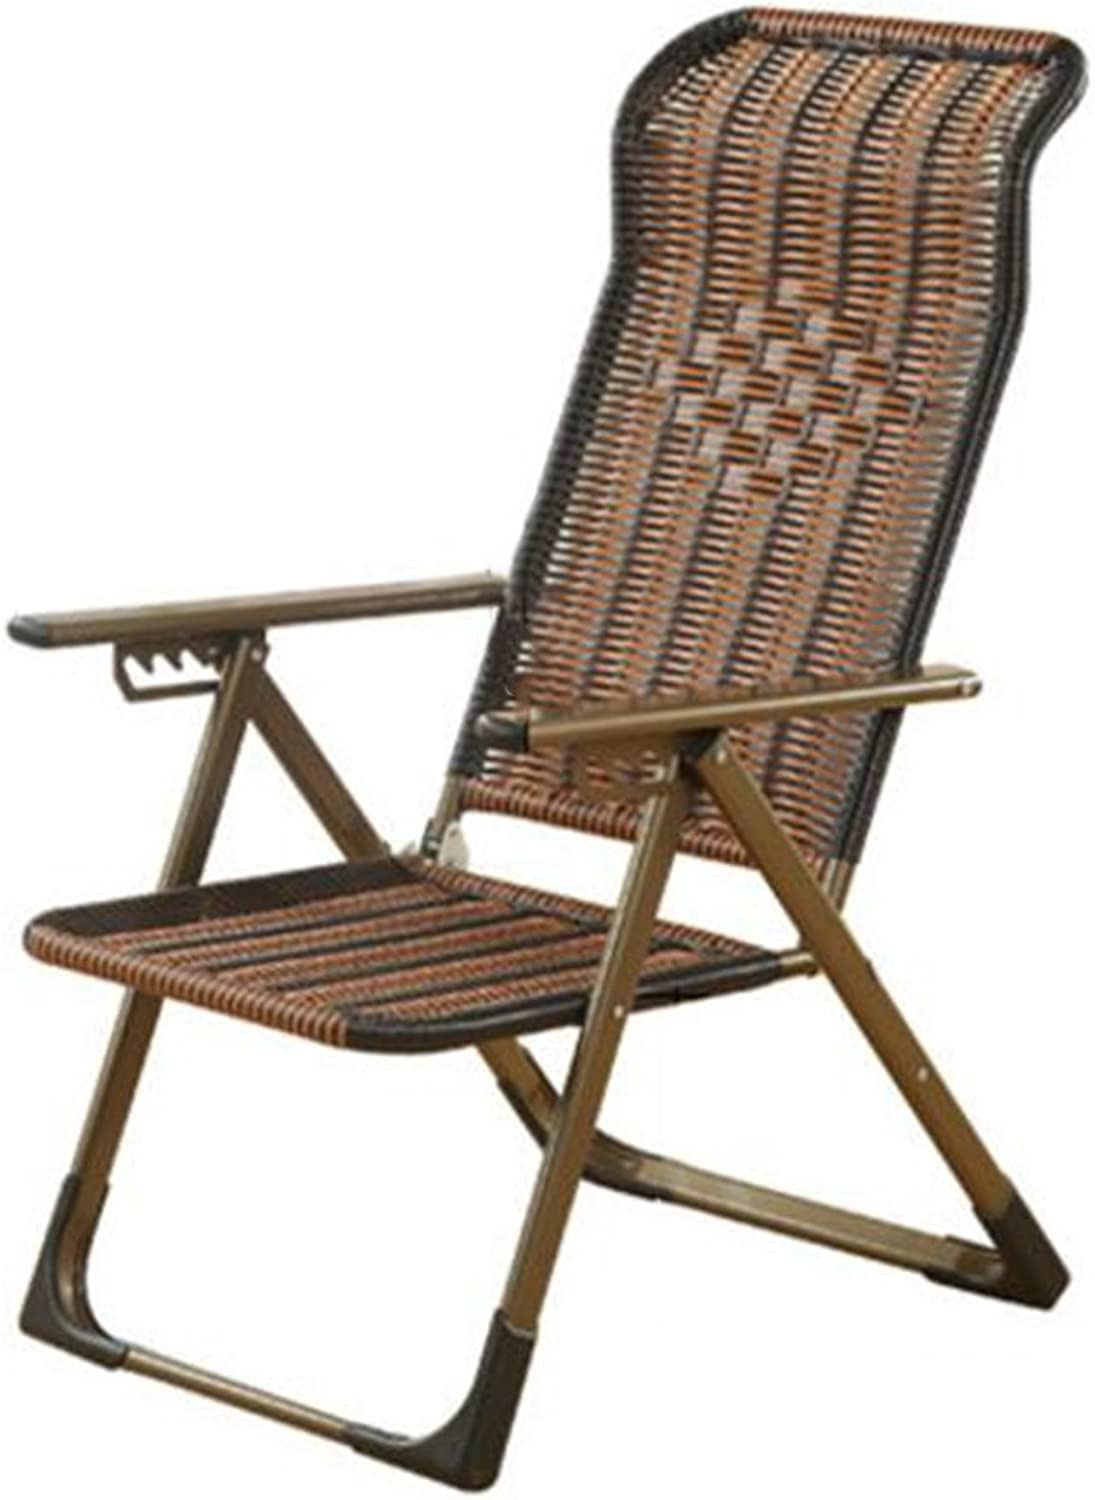 YAXIAO-Folding chair Folding Lounge Chair Lunch Break Couch Office Bed Recliner Back Lazy Chair Chair Balcony Beach Chair (color   Flat feet)